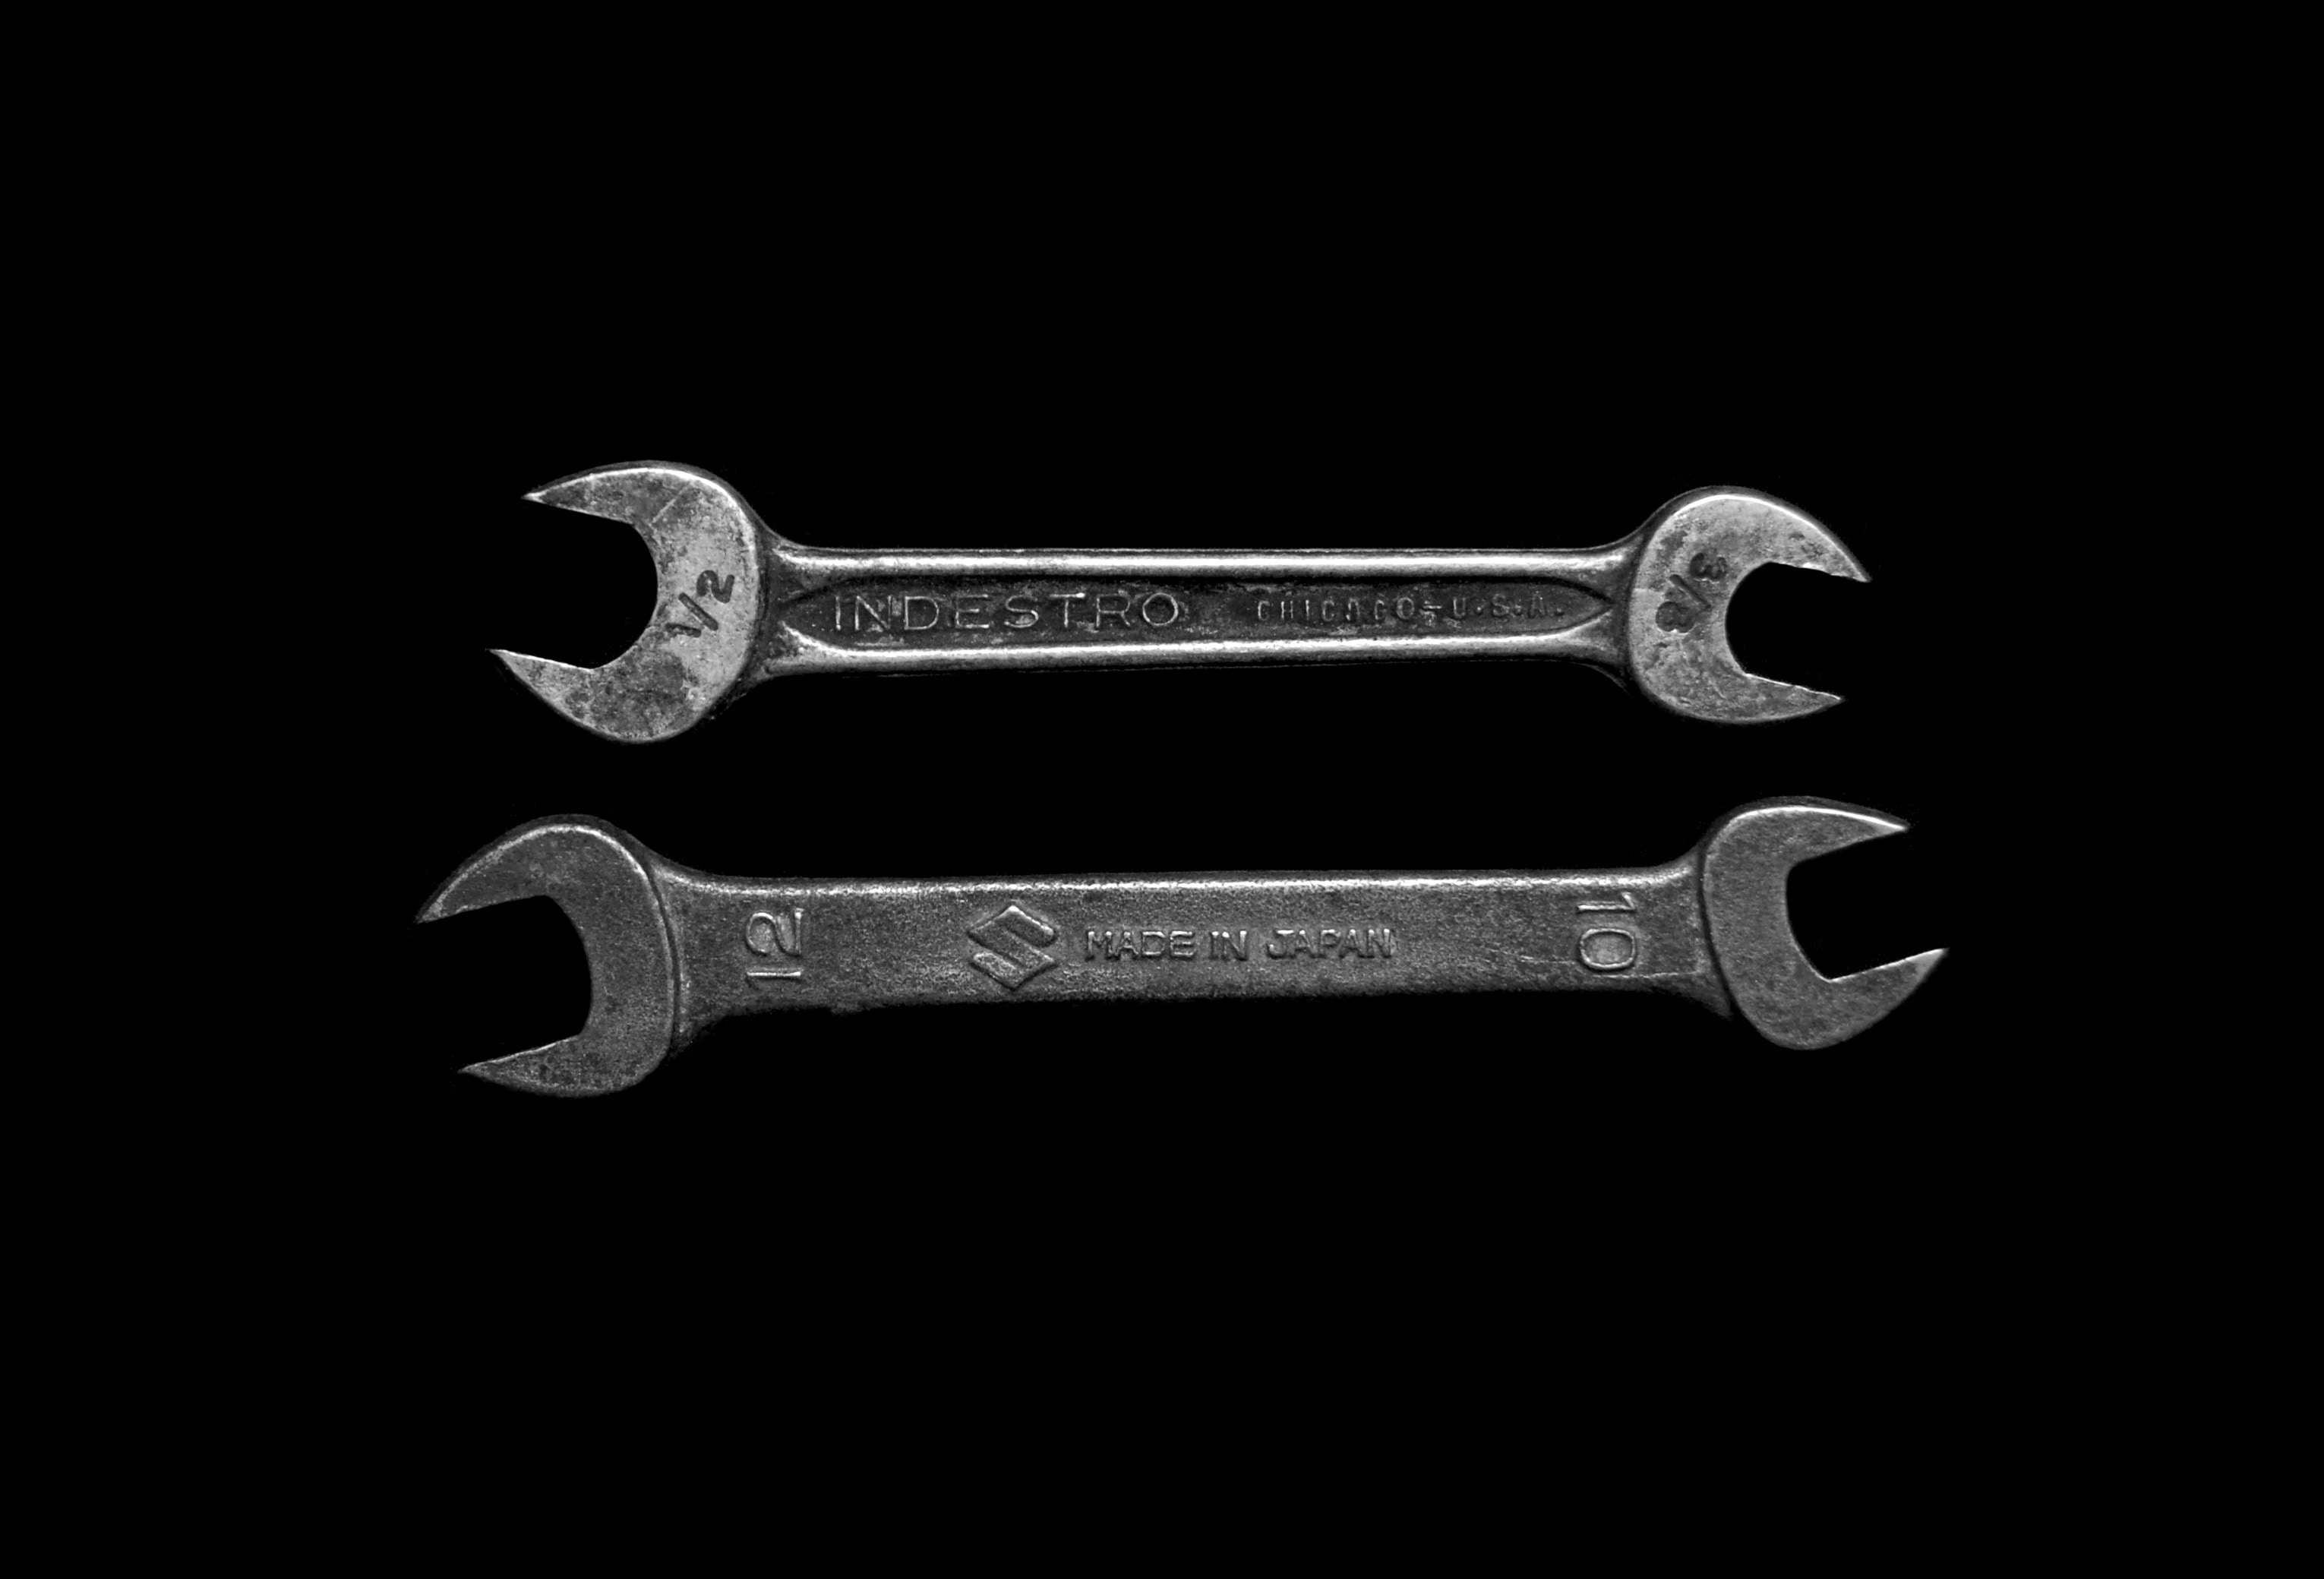 Two wrenches on a table